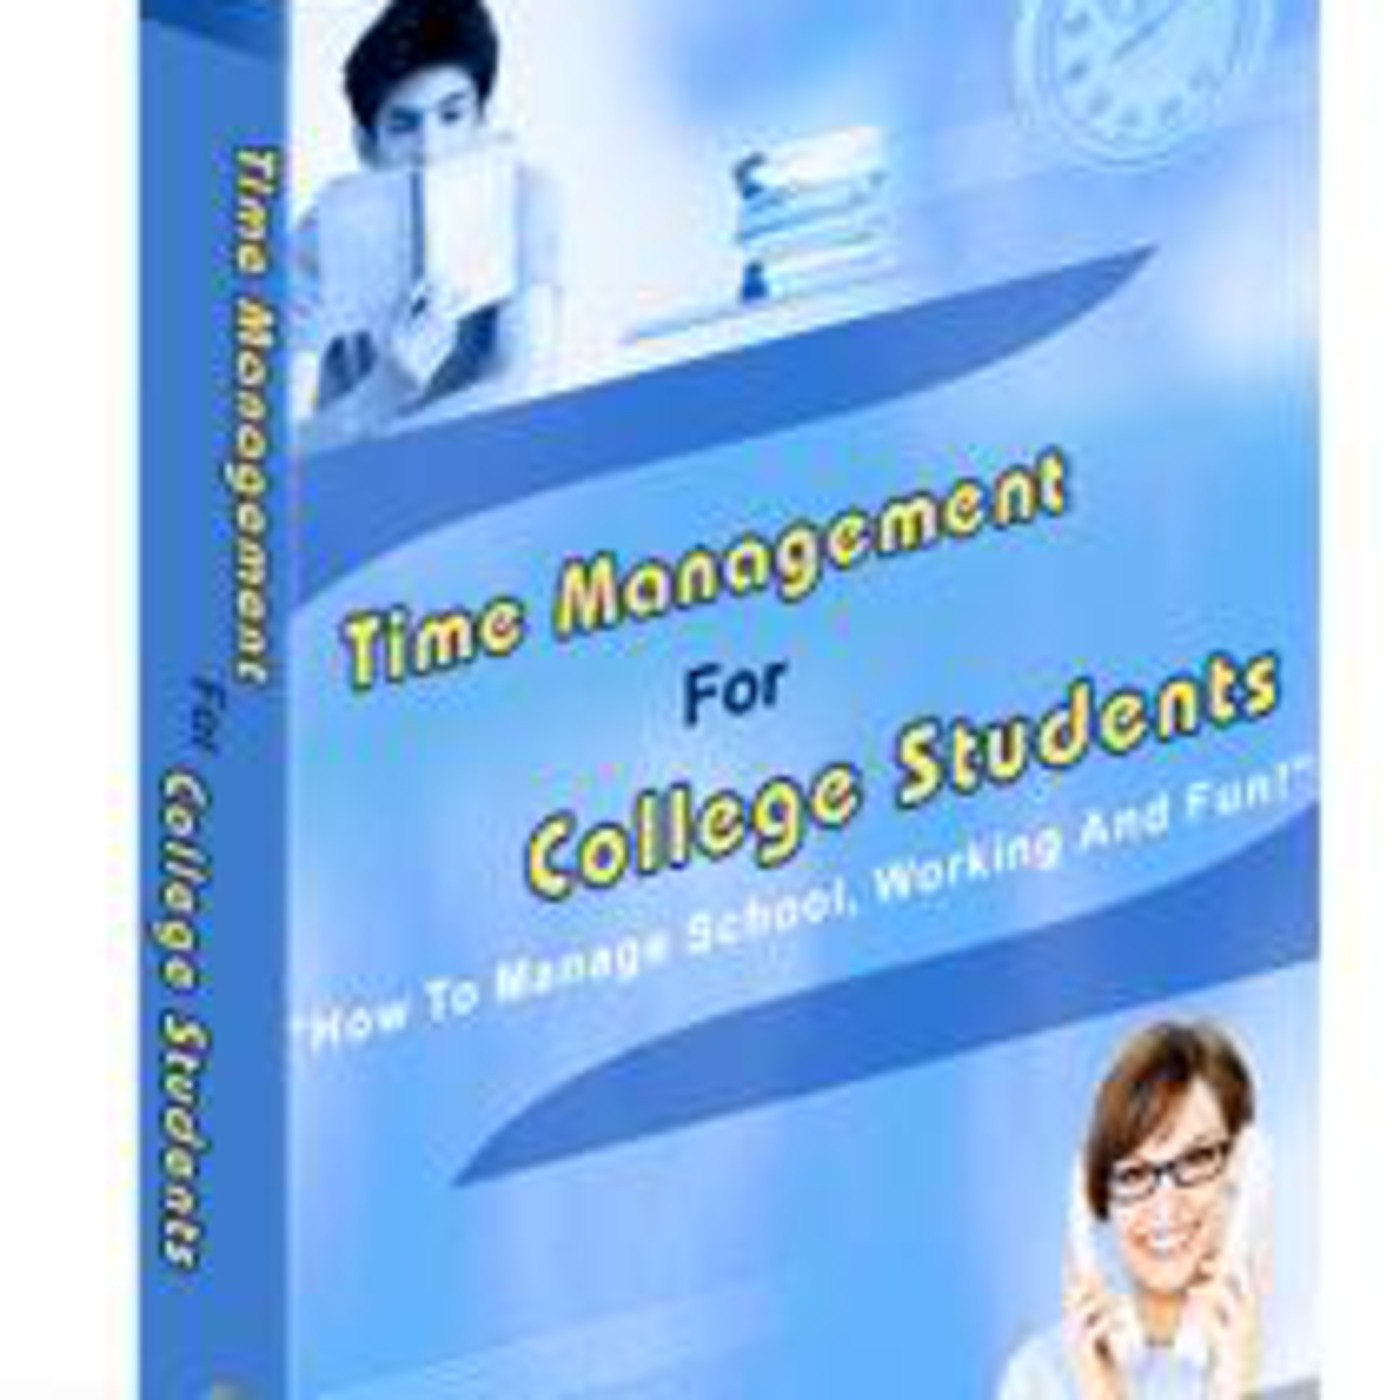 introduction about working student time management Pages introduction 2 a poor management 2 time budget 2 goal setting 3 prioritizing a time 3 time wasters 4 reduce stress 4 conclusion 5 reference 6 introduction in this generation, many students are usually challenged with how to properly manage their own time every human being gets 168 hours on one week.